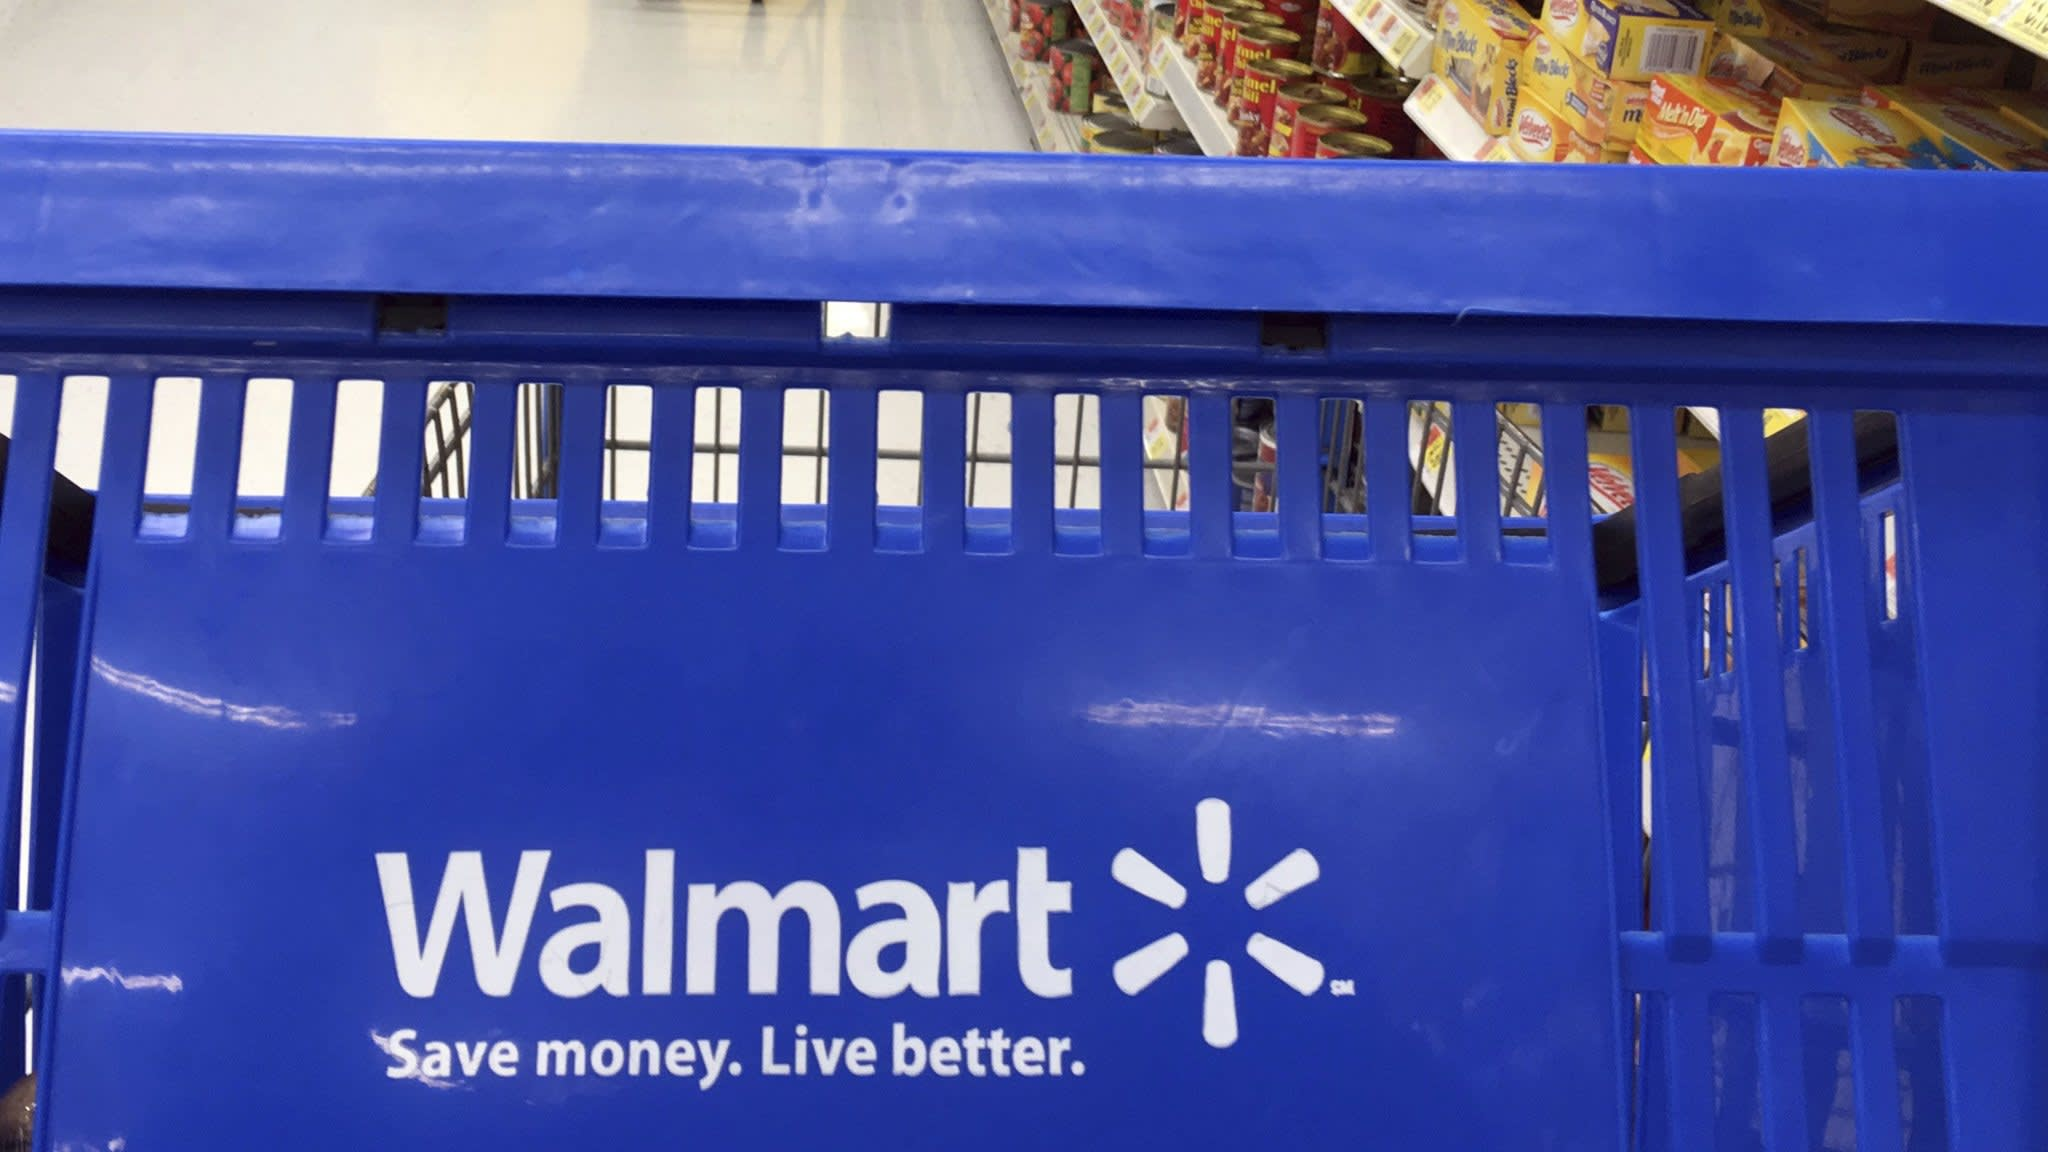 Former executive claims Walmart overstated sales